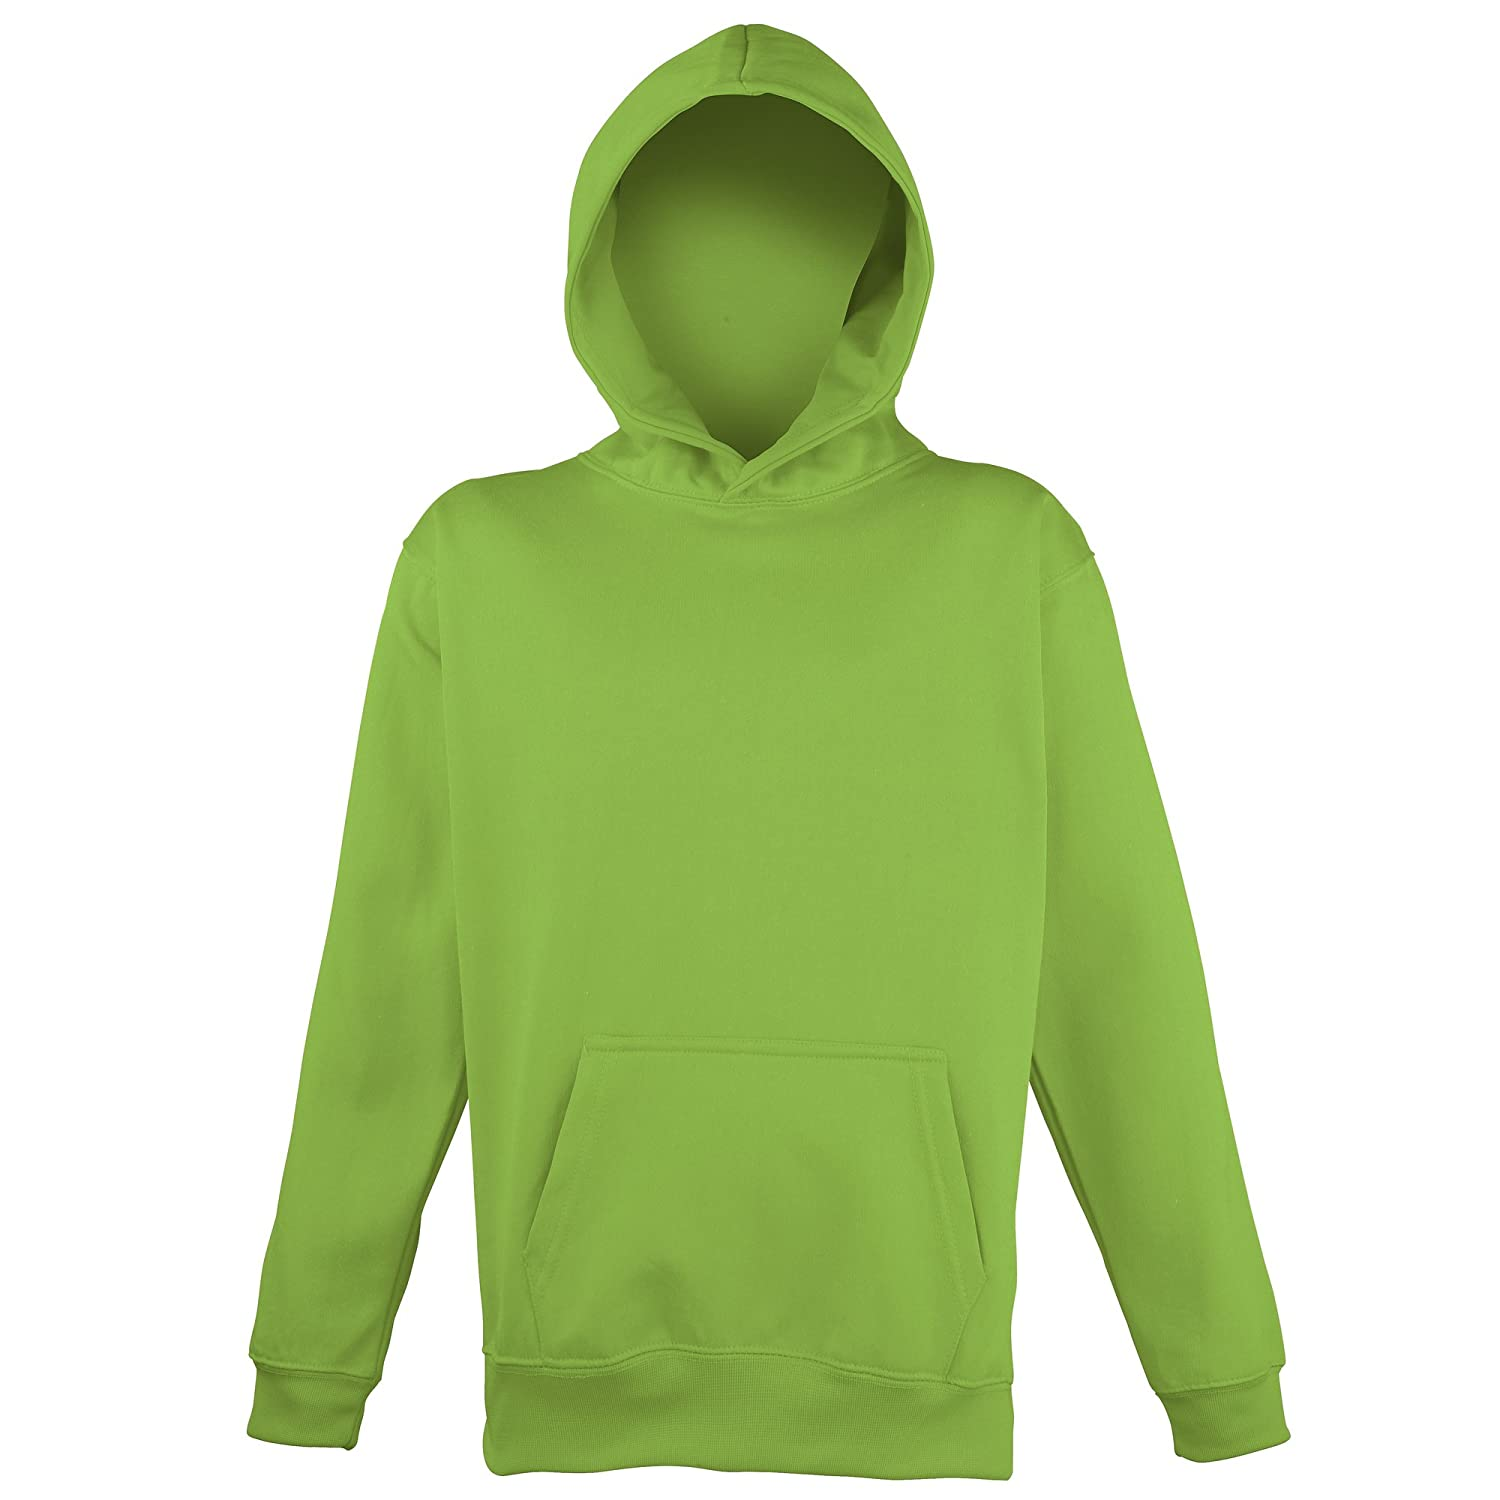 Awdis Childrens Unisex Electric Hooded Sweatshirt/Hoodie/Schoolwear